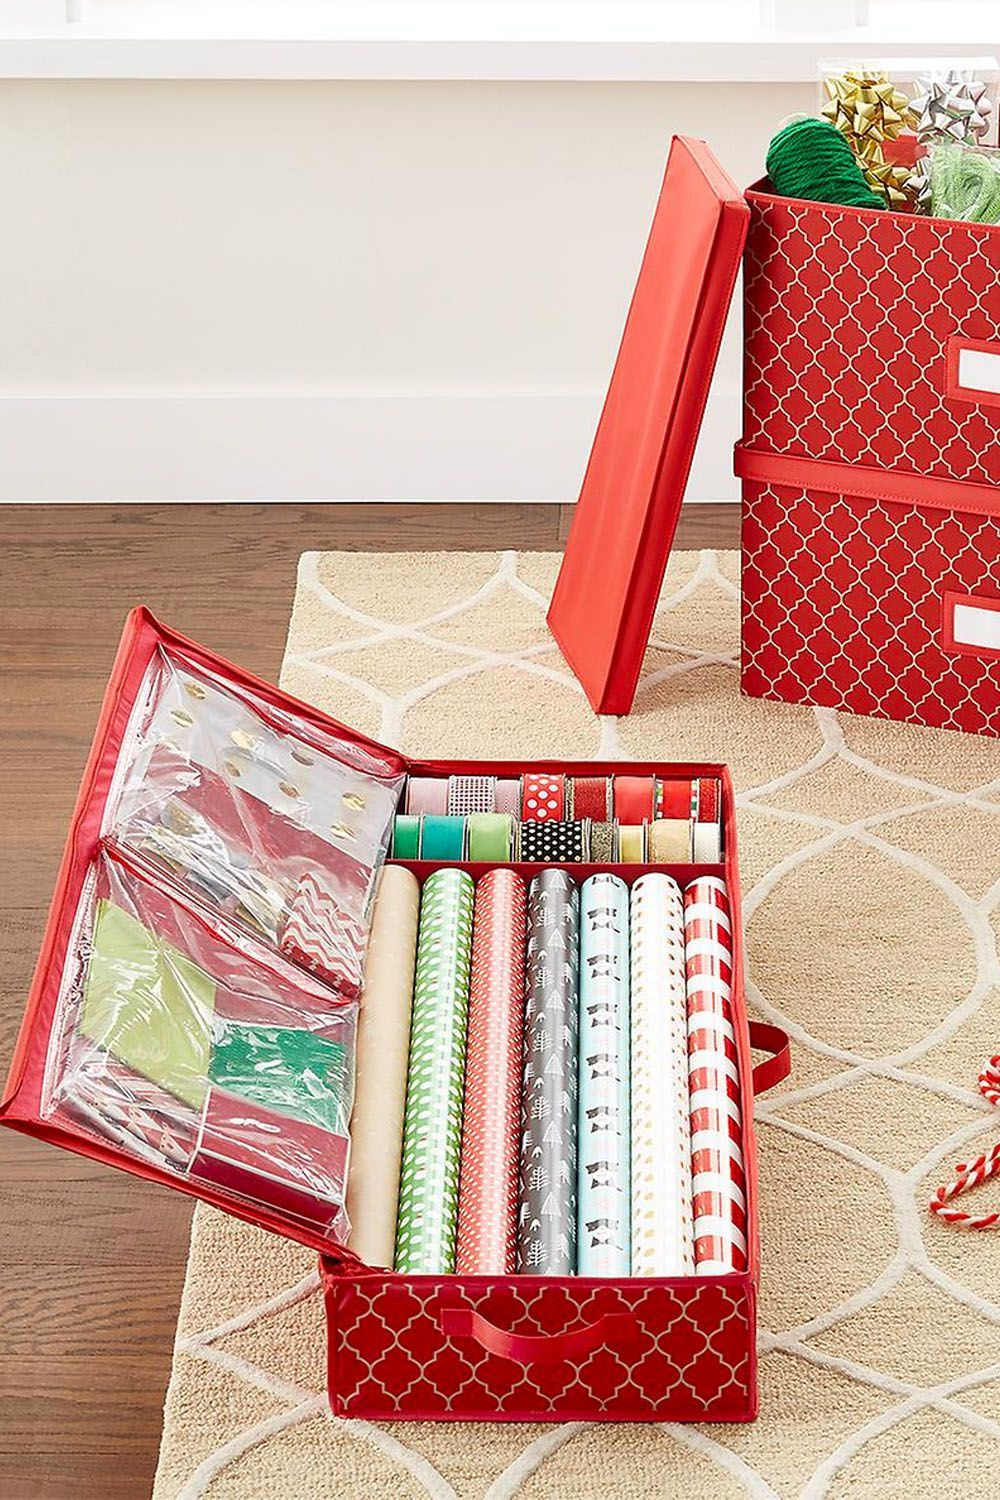 The Container Store & How to Organize Wrapping Paper - 15 Gift Wrap Organization Ideas